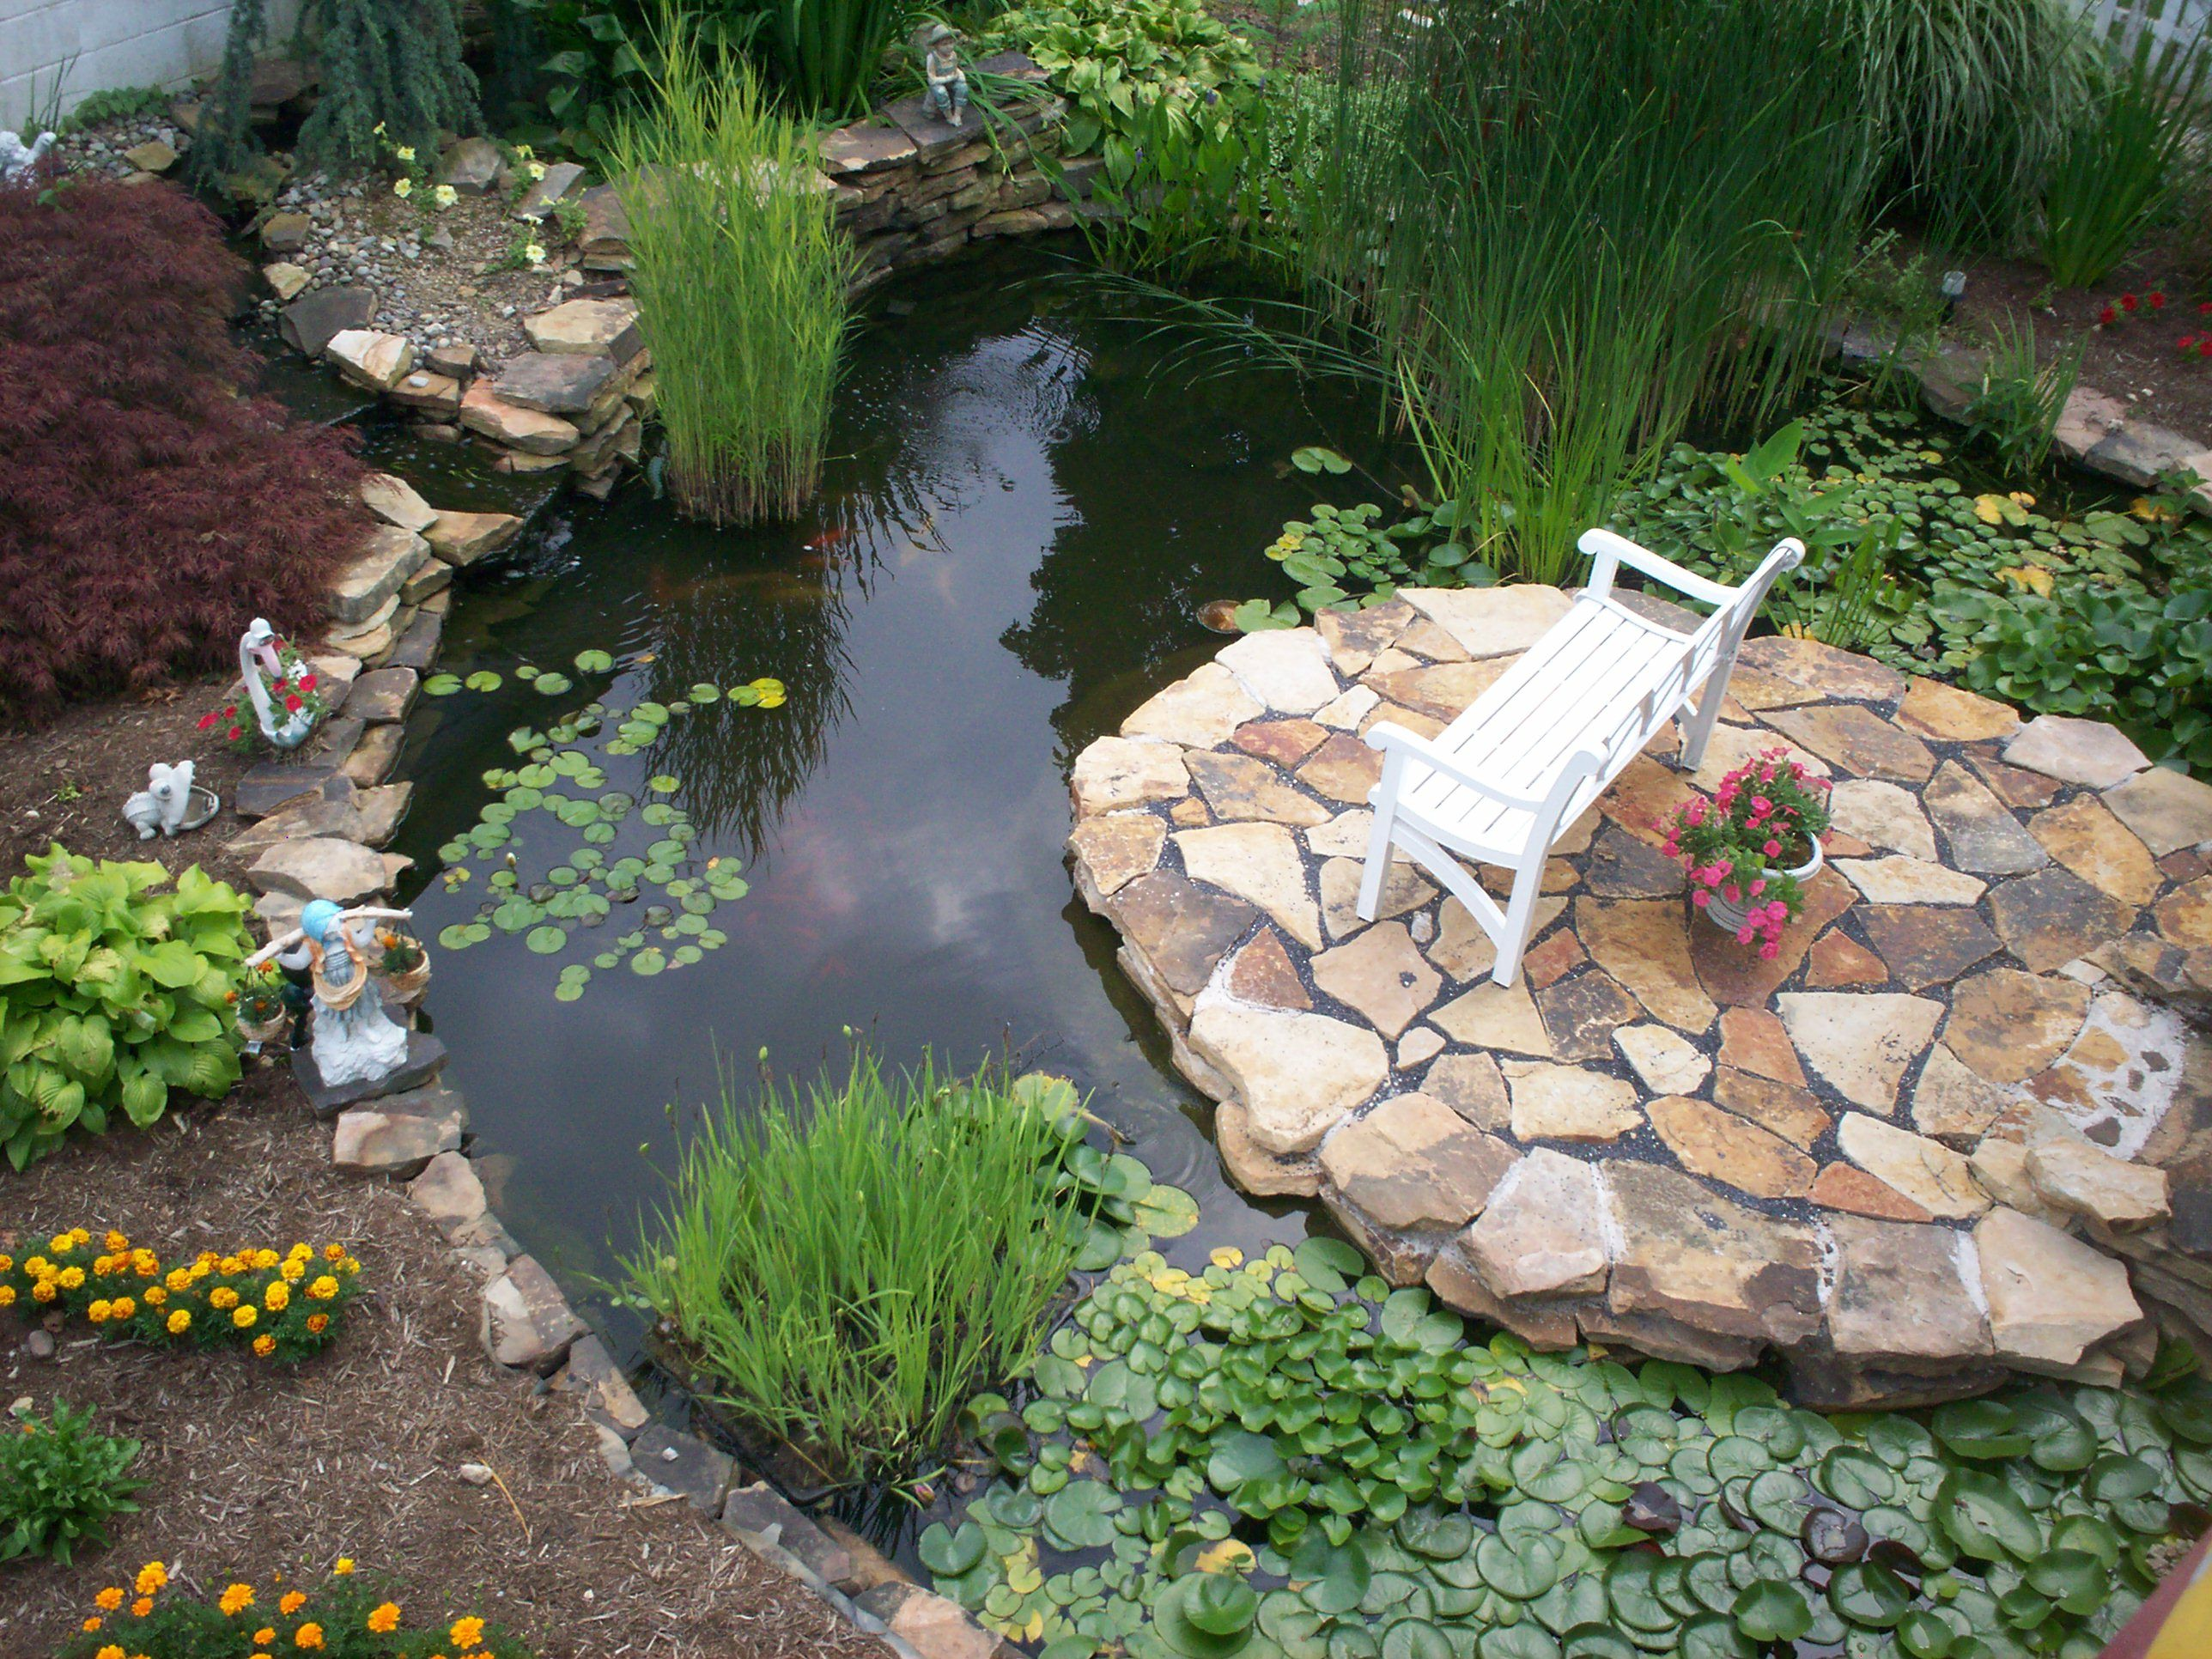 Charmant Water Garden With Island Bench.